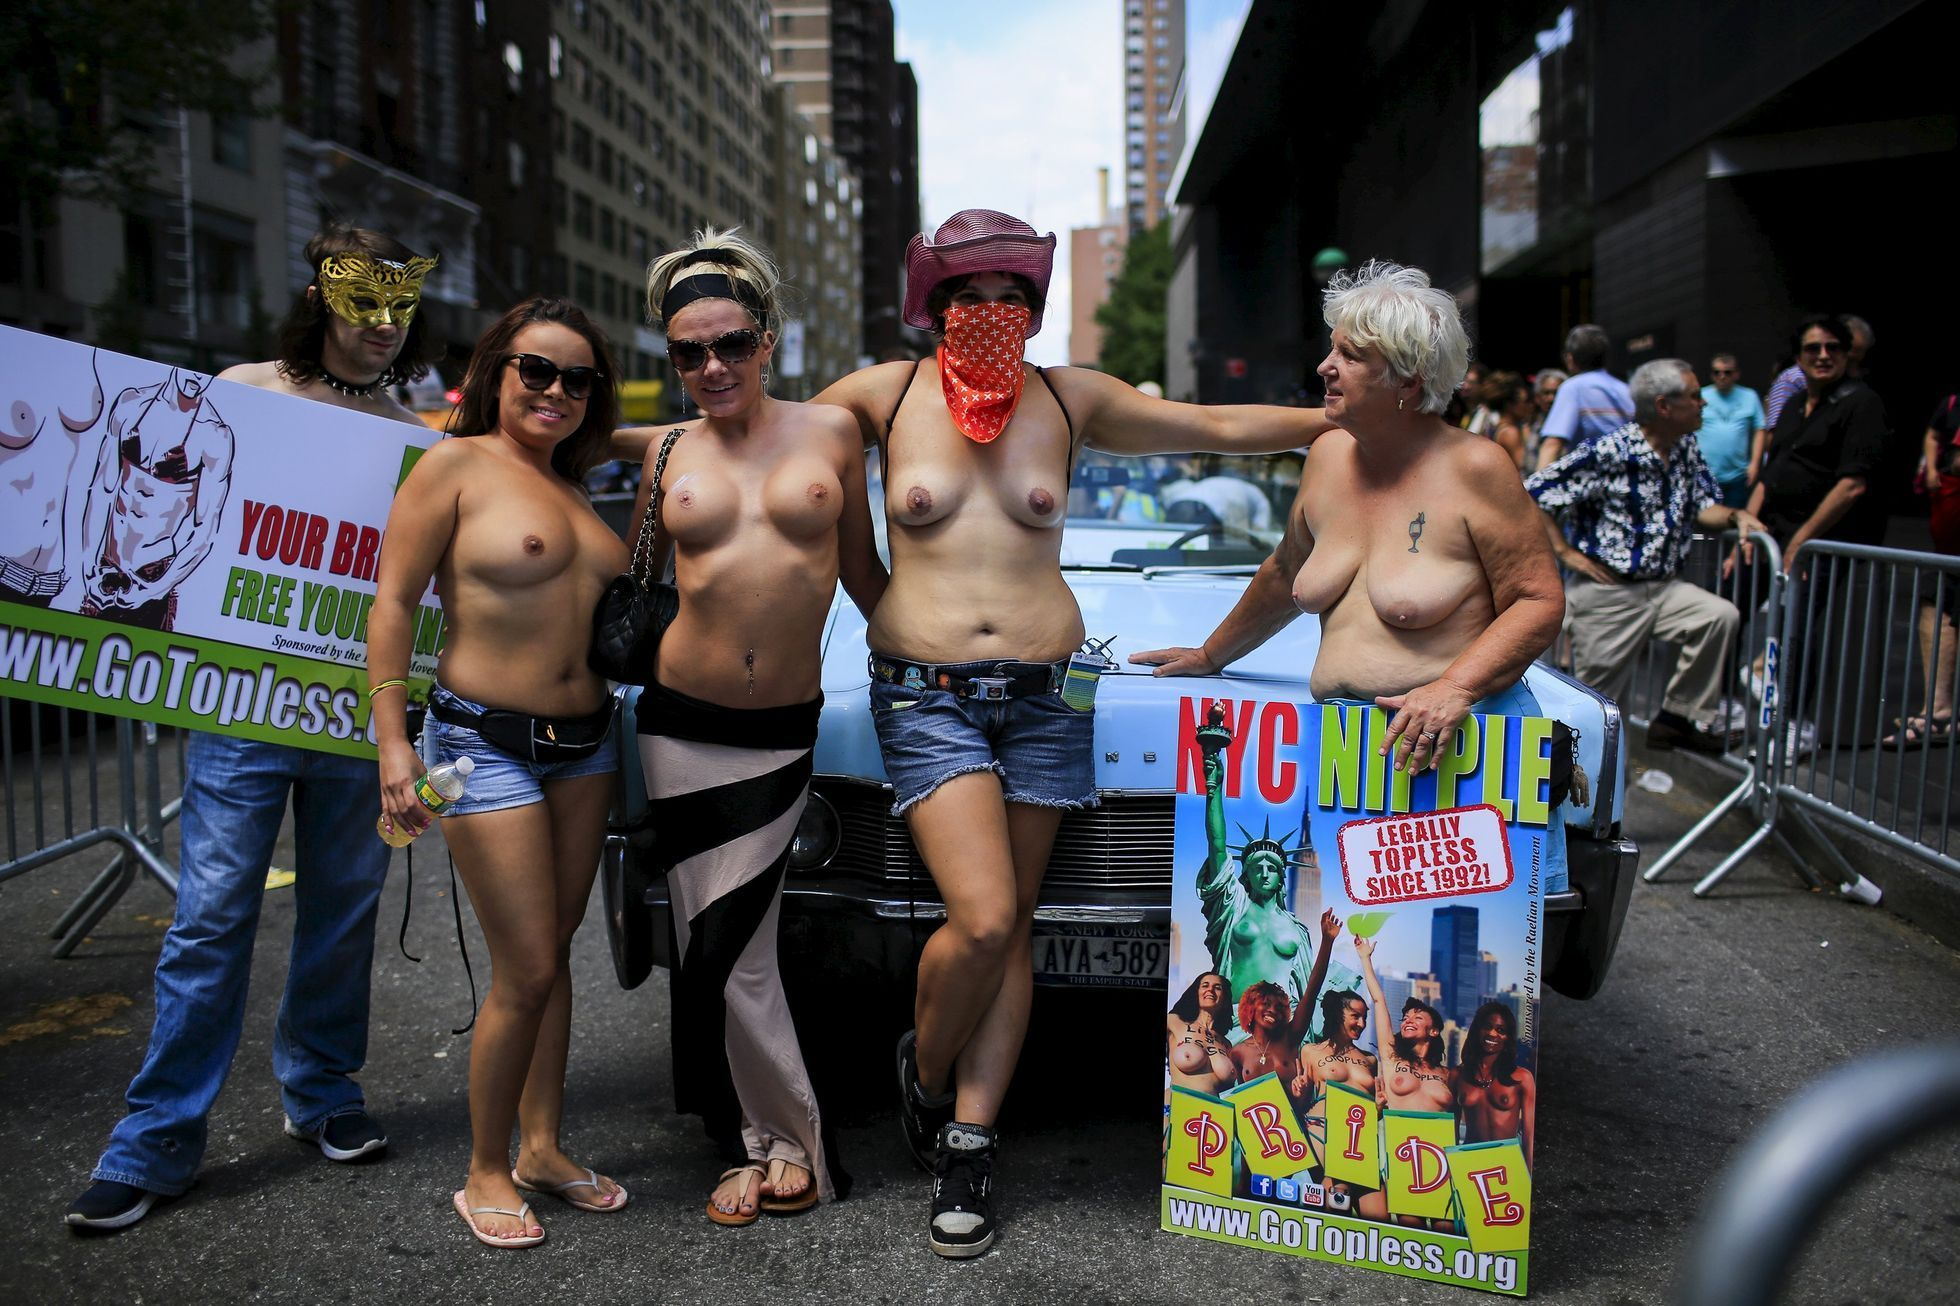 Women pose for a picture before starting a topless march in New York